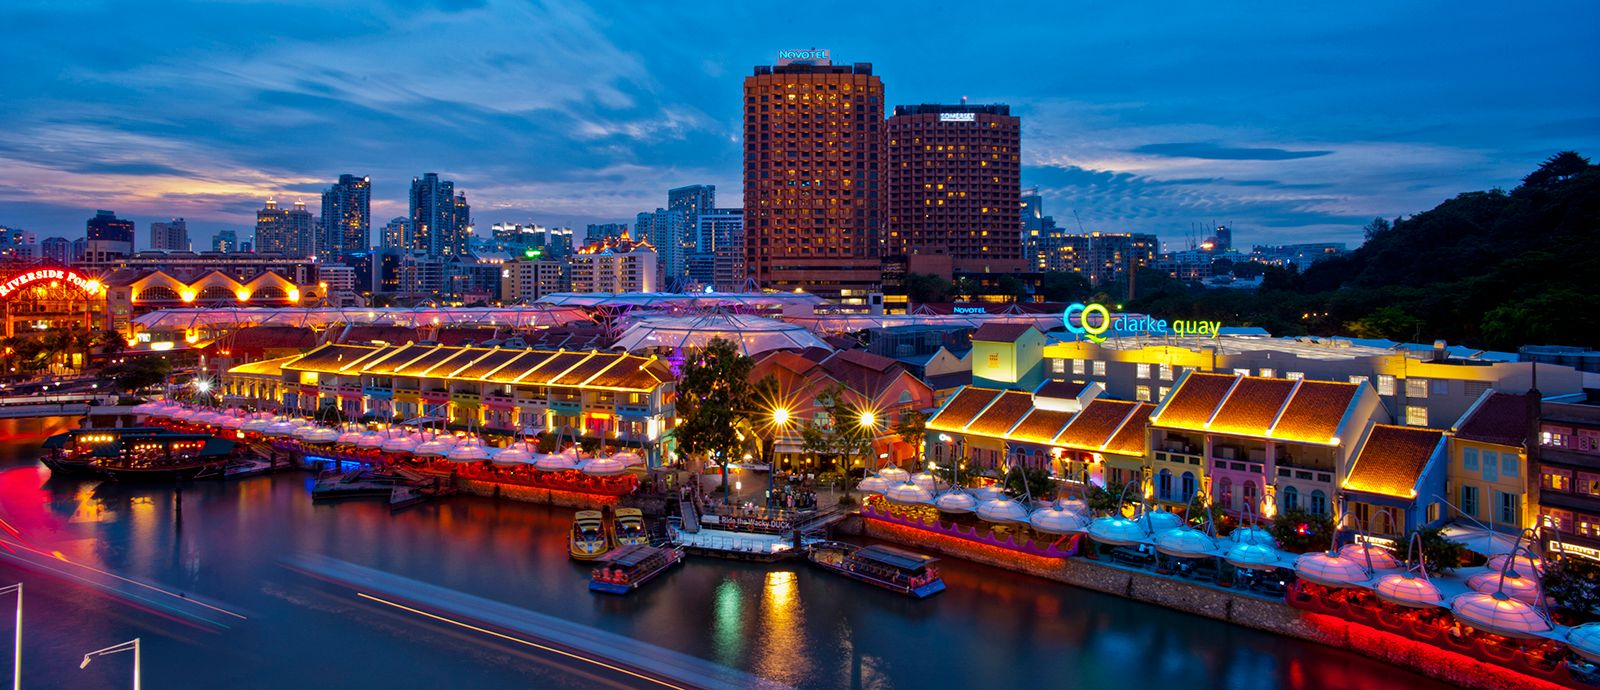 Canninghill Piers - Clarke Quay